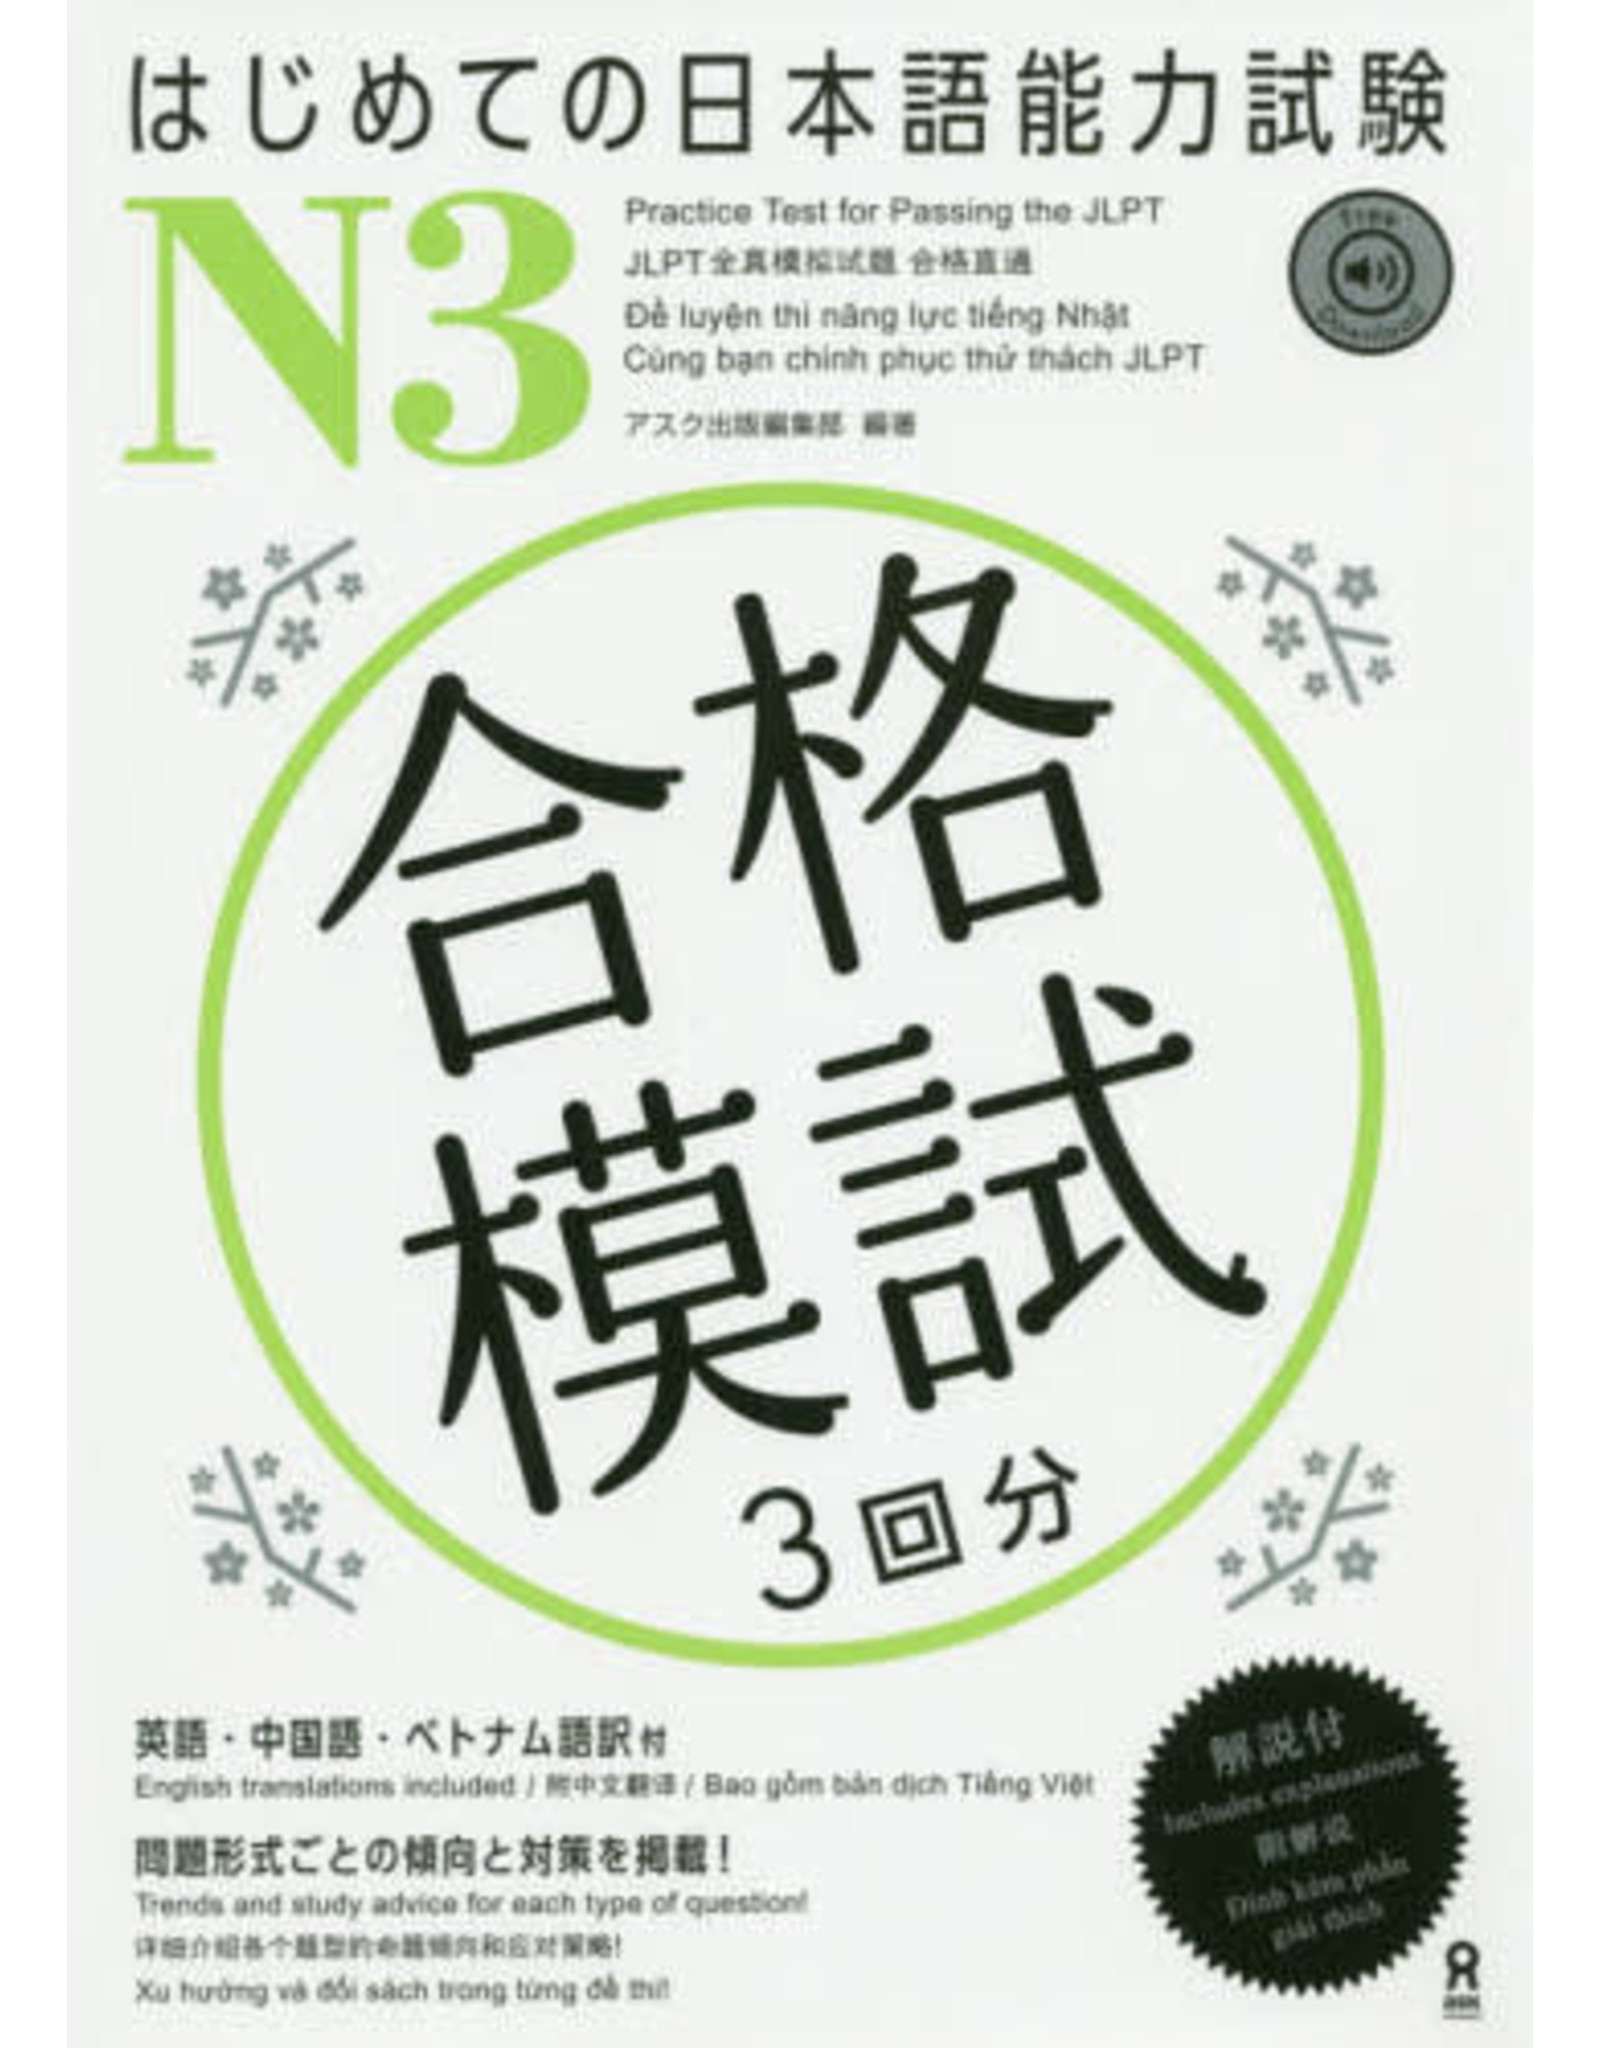 ASK PRACTICE TEST FOR PASSING THE JLPT N3